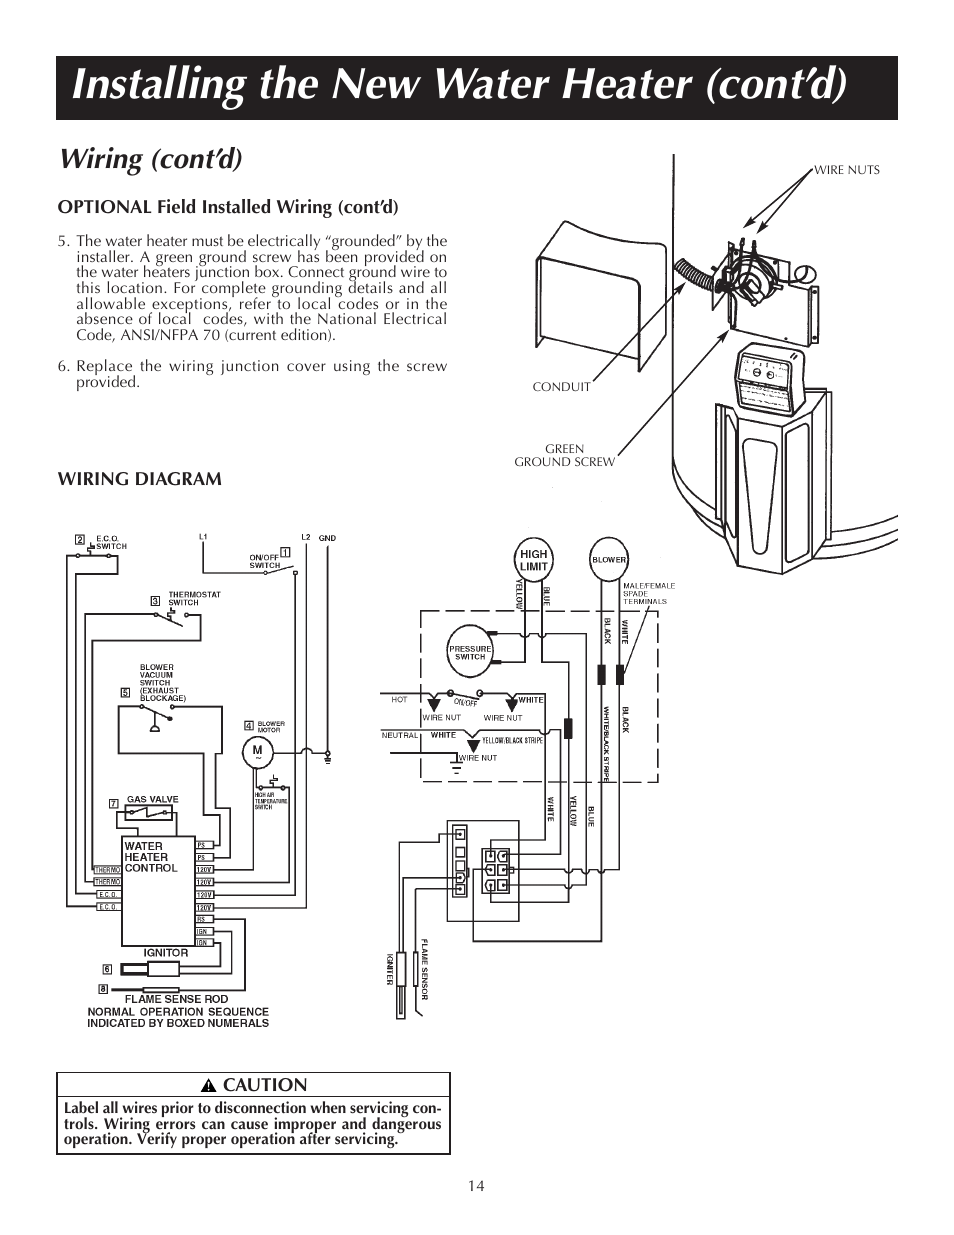 installing the new water heater  cont u2019d   wiring  cont u2019d